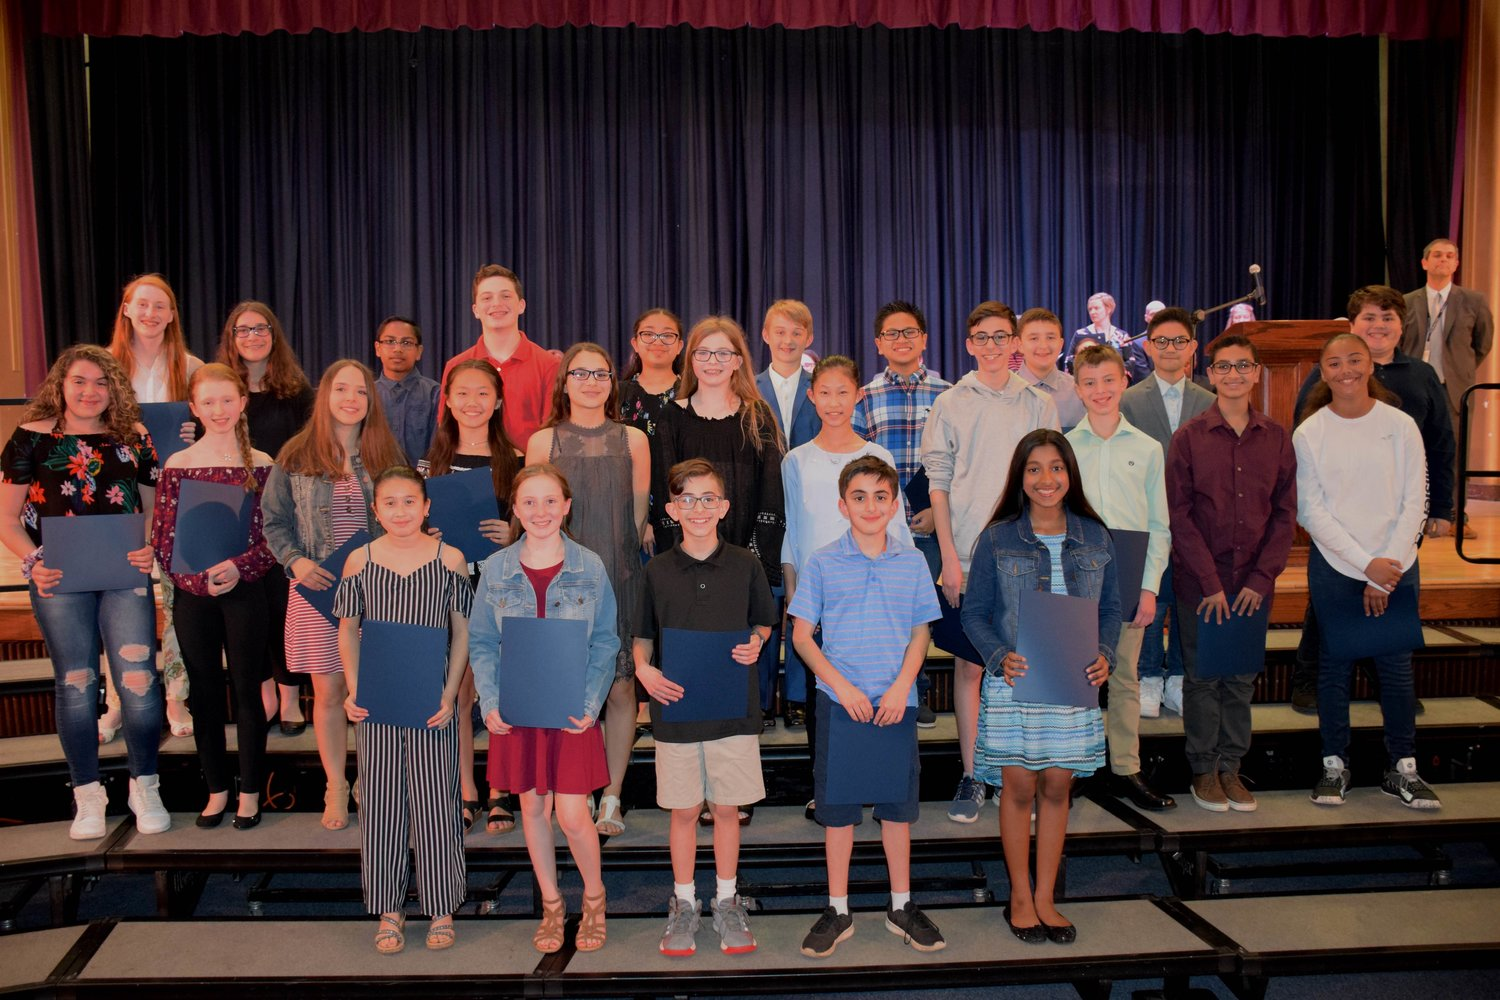 Students from W.T. Clarke Middle School and Woodland Middle School were honored for their musical talents at the East Meadow School District's Music and Art Award ceremony on May 7.